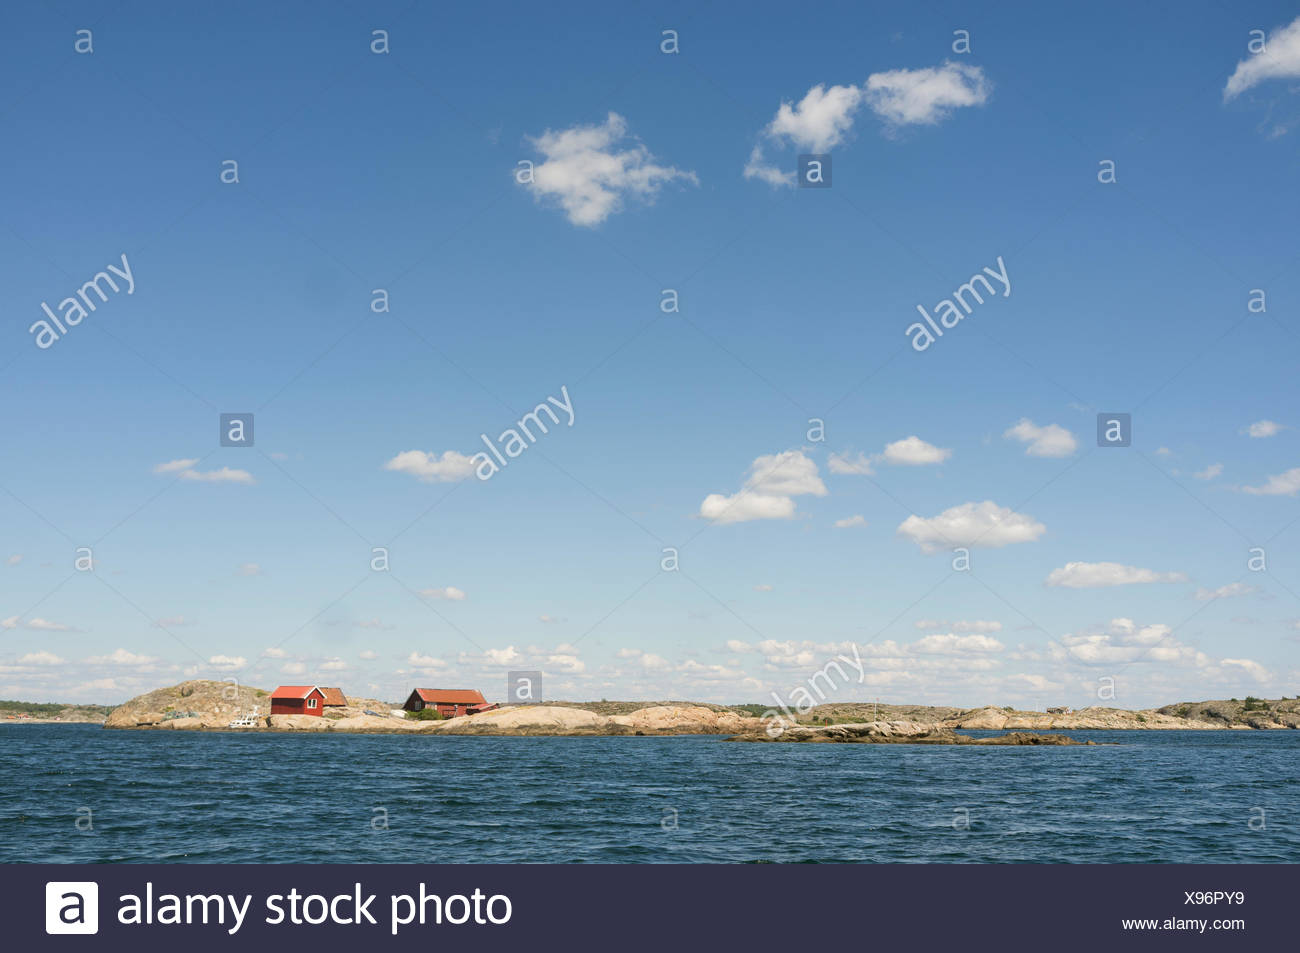 Idyllic view of lake against sky - Stock Photo